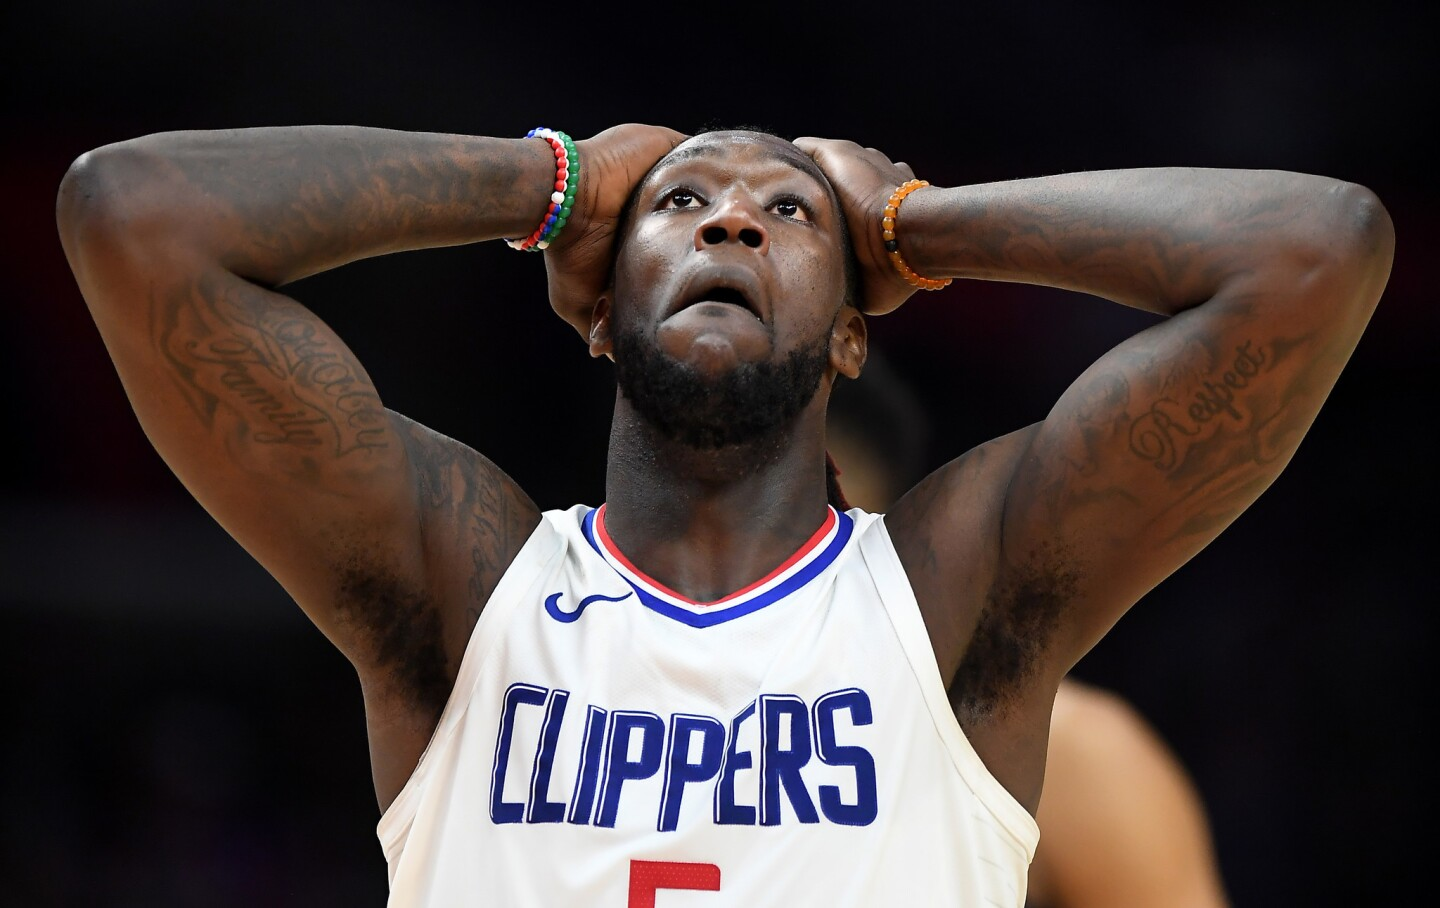 Clippers forward Montrezl Harrell walks down court after being called for a foul against the TImberwolves late in the fourth quarter.